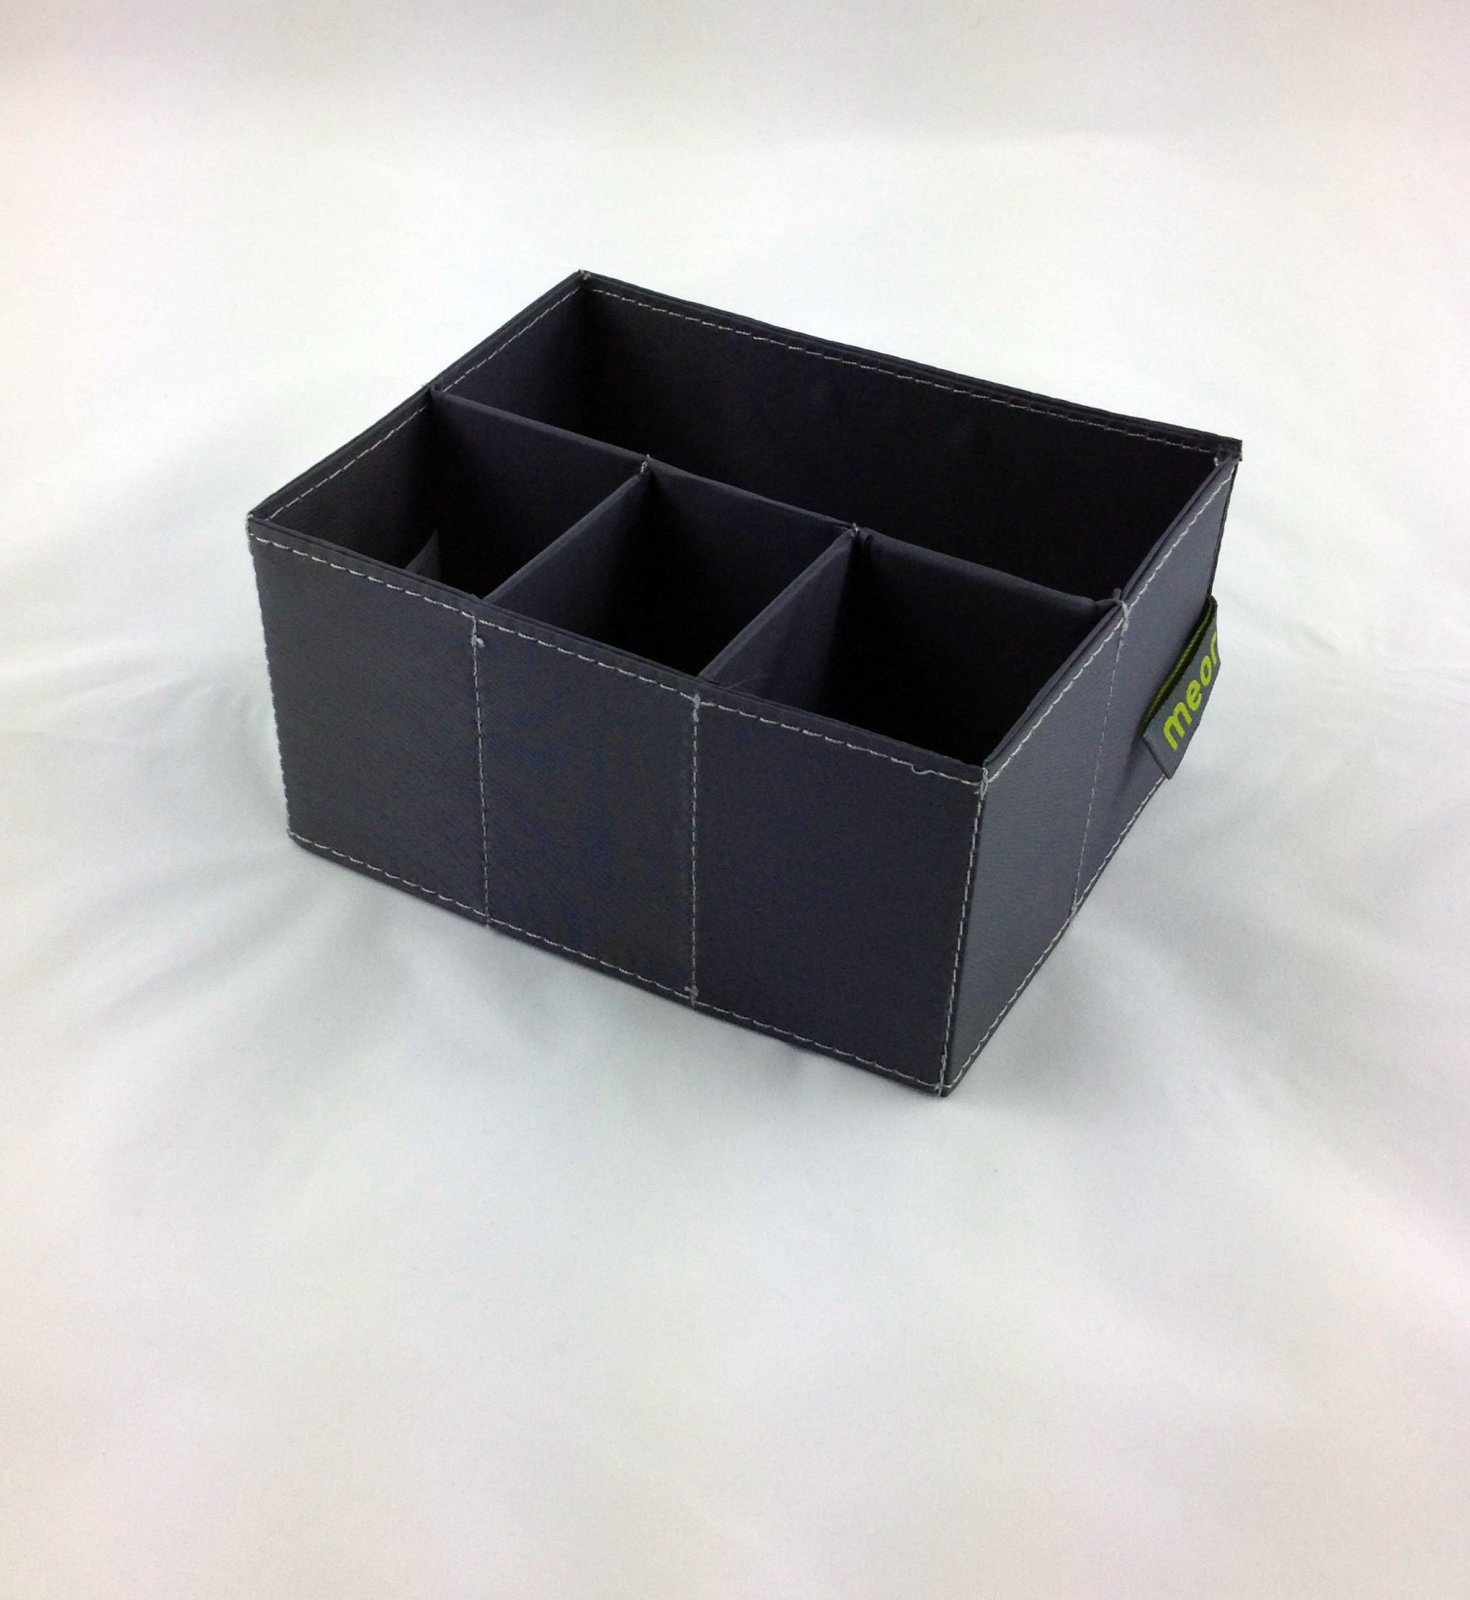 Box Insert Mini 3 + 1